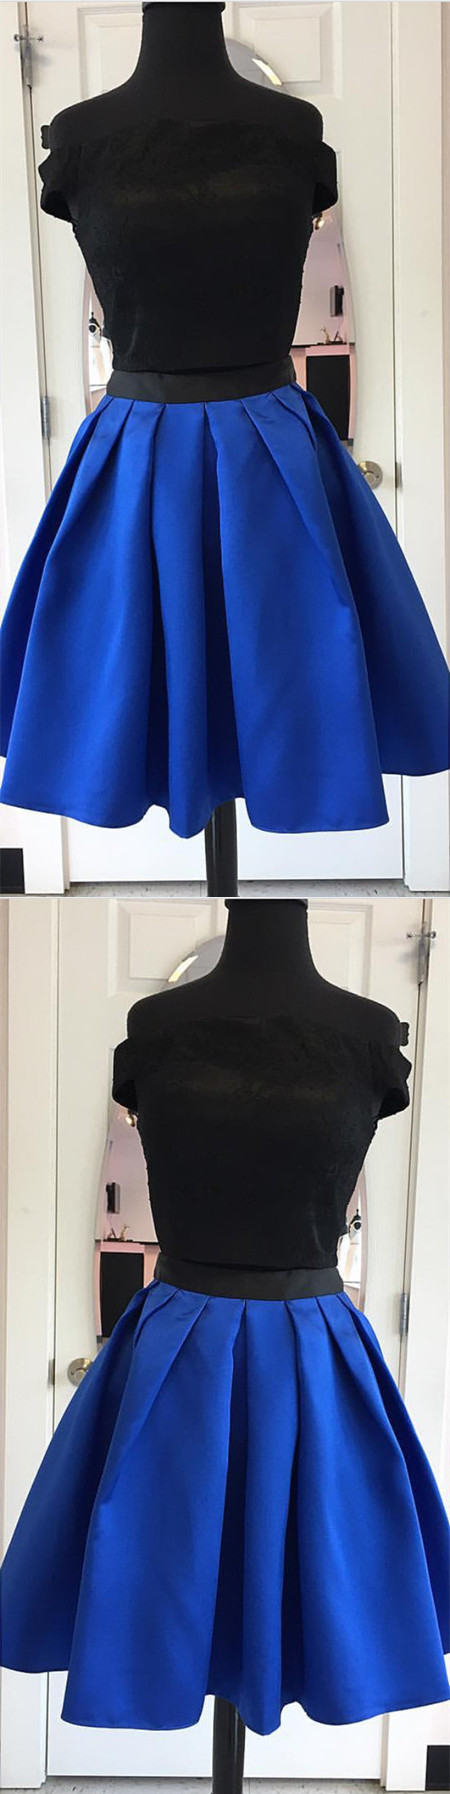 Two piece homecoming dress piece homecoming dressshort prom